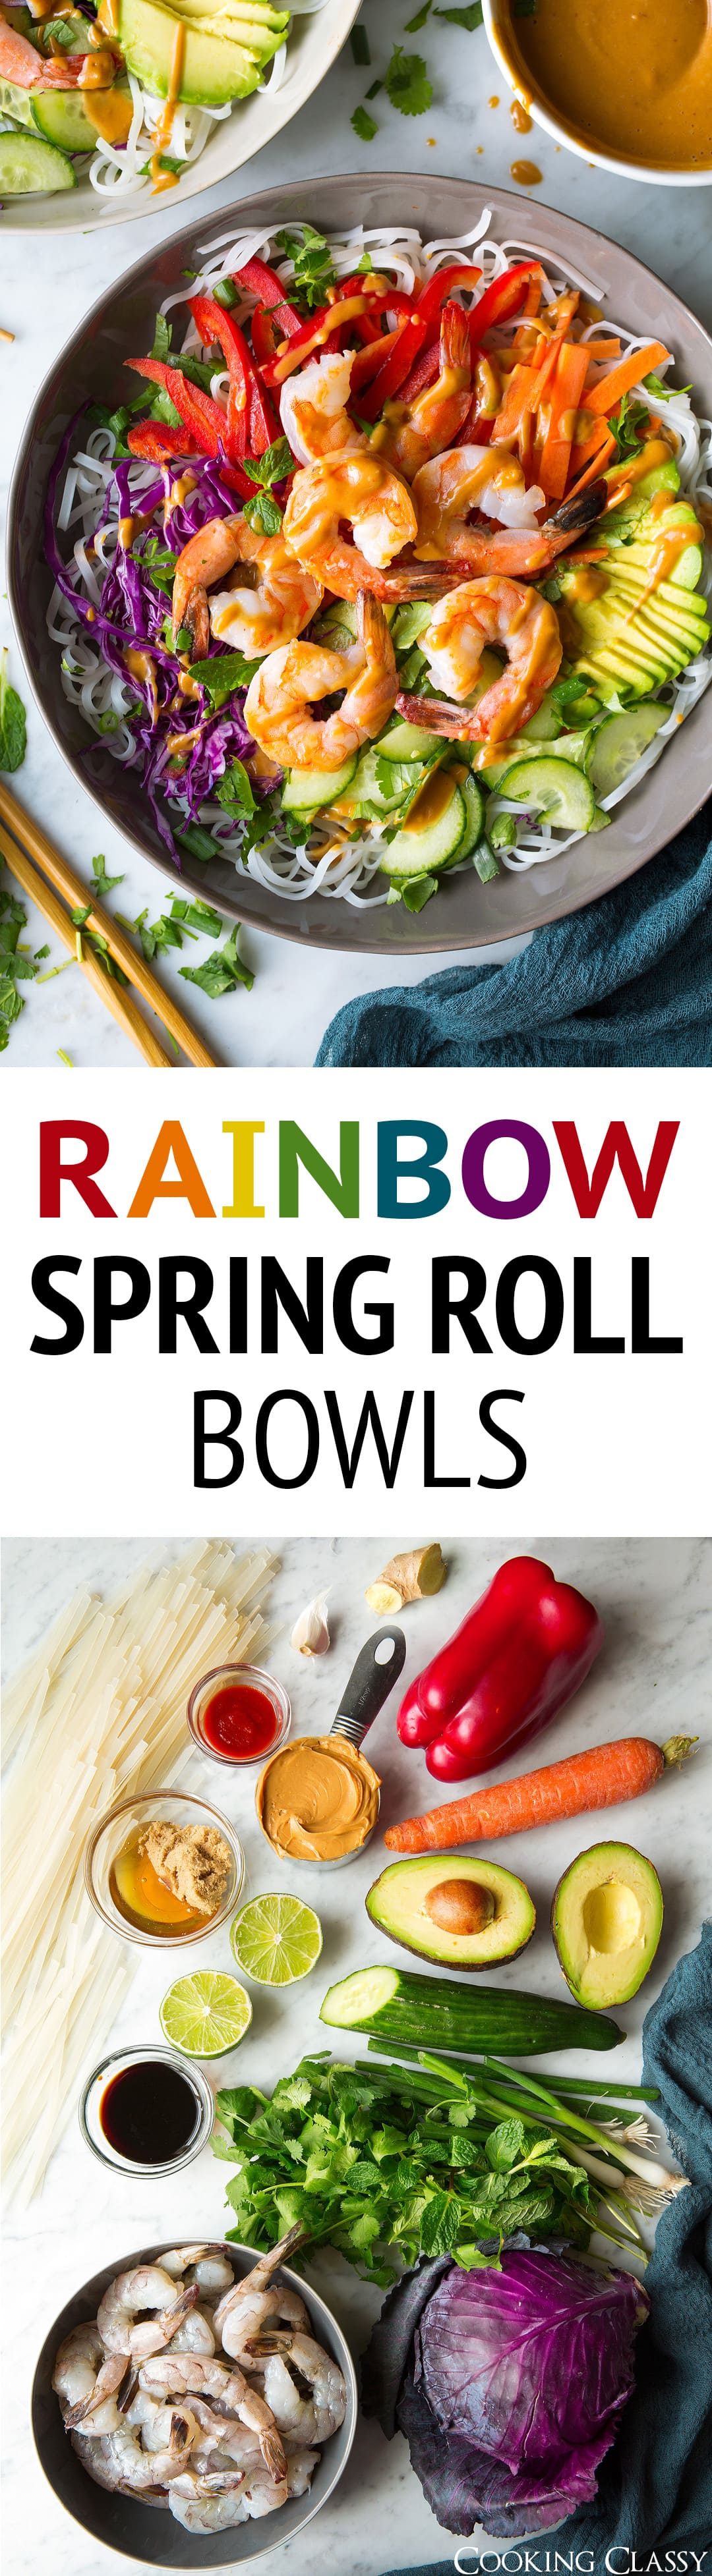 Rainbow Spring Roll Bowls with Peanut Sauce these are SO GOOD! They're boasting with bright and rich flavors and a beautiful array of colors. Then add shrimp or chicken to the mix to make them that much more filling. I just can't get enough of these bowls! #springrolls #summerrolls #chicken #shrimp #bowls #healthyrecipe #thai